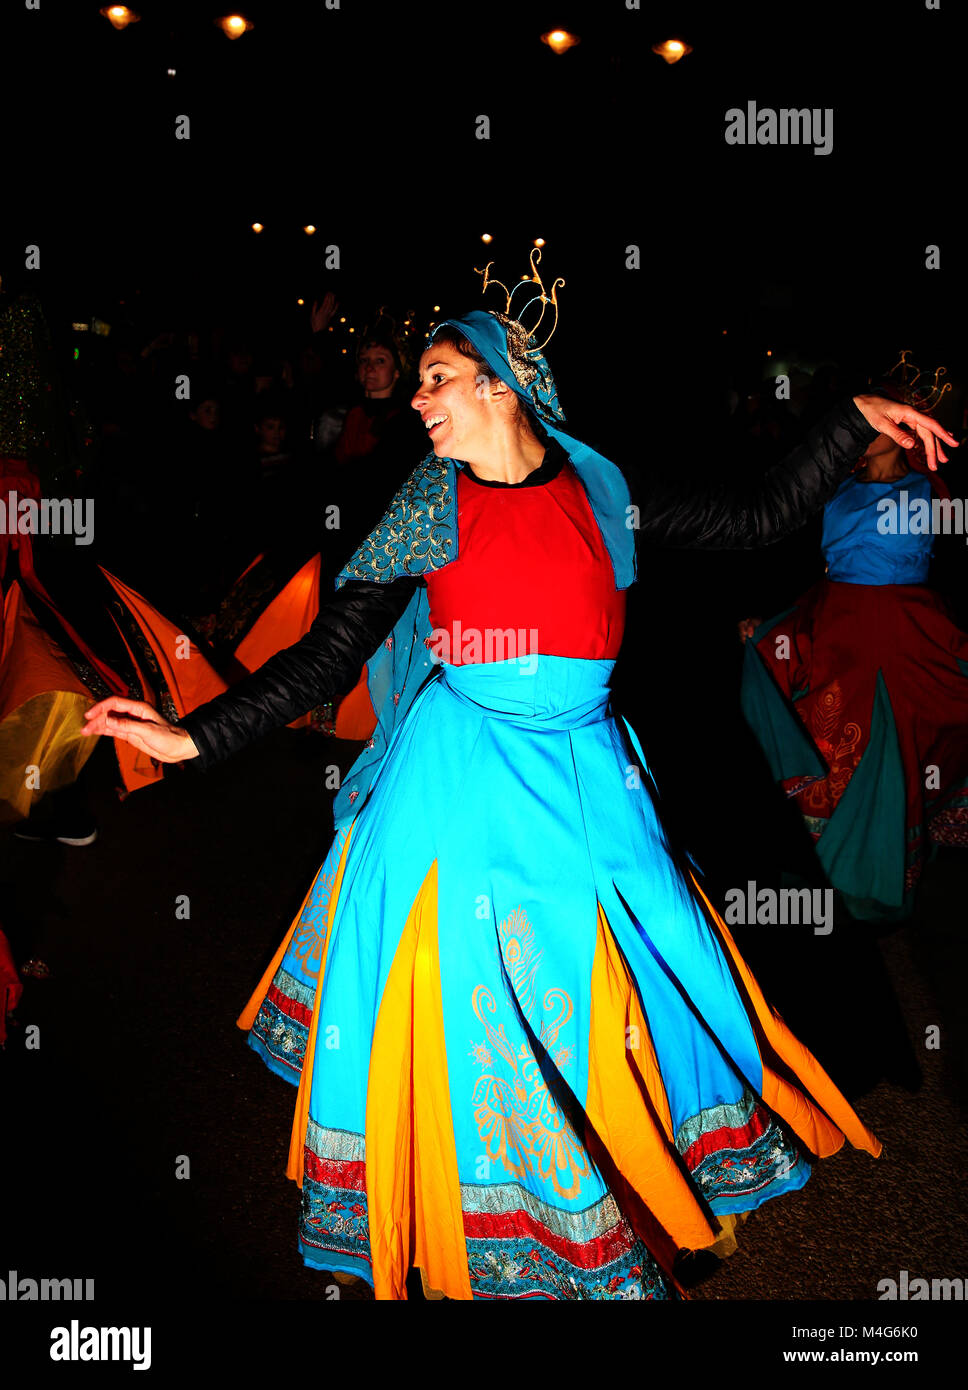 Oldham, UK. 16th Feb, 2018. A dancer takes part in entertainment at illuminate Oldham, 16th February, 2018 (C)Barbara - Stock Image